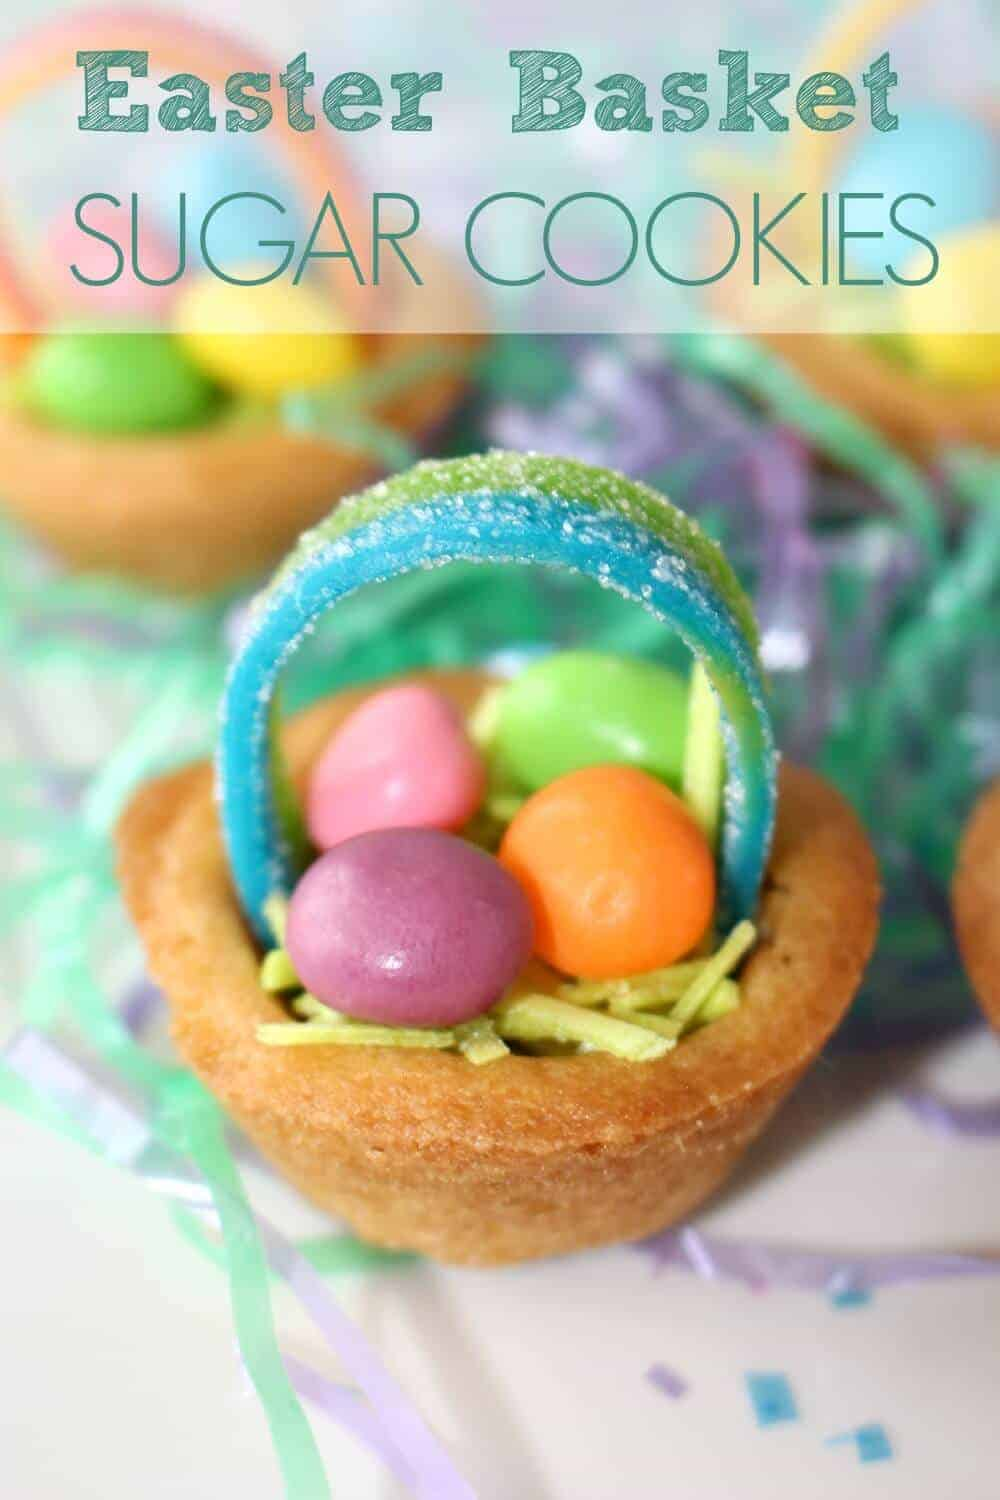 Easter Basket Sugar Cookies - Easy Easter treat